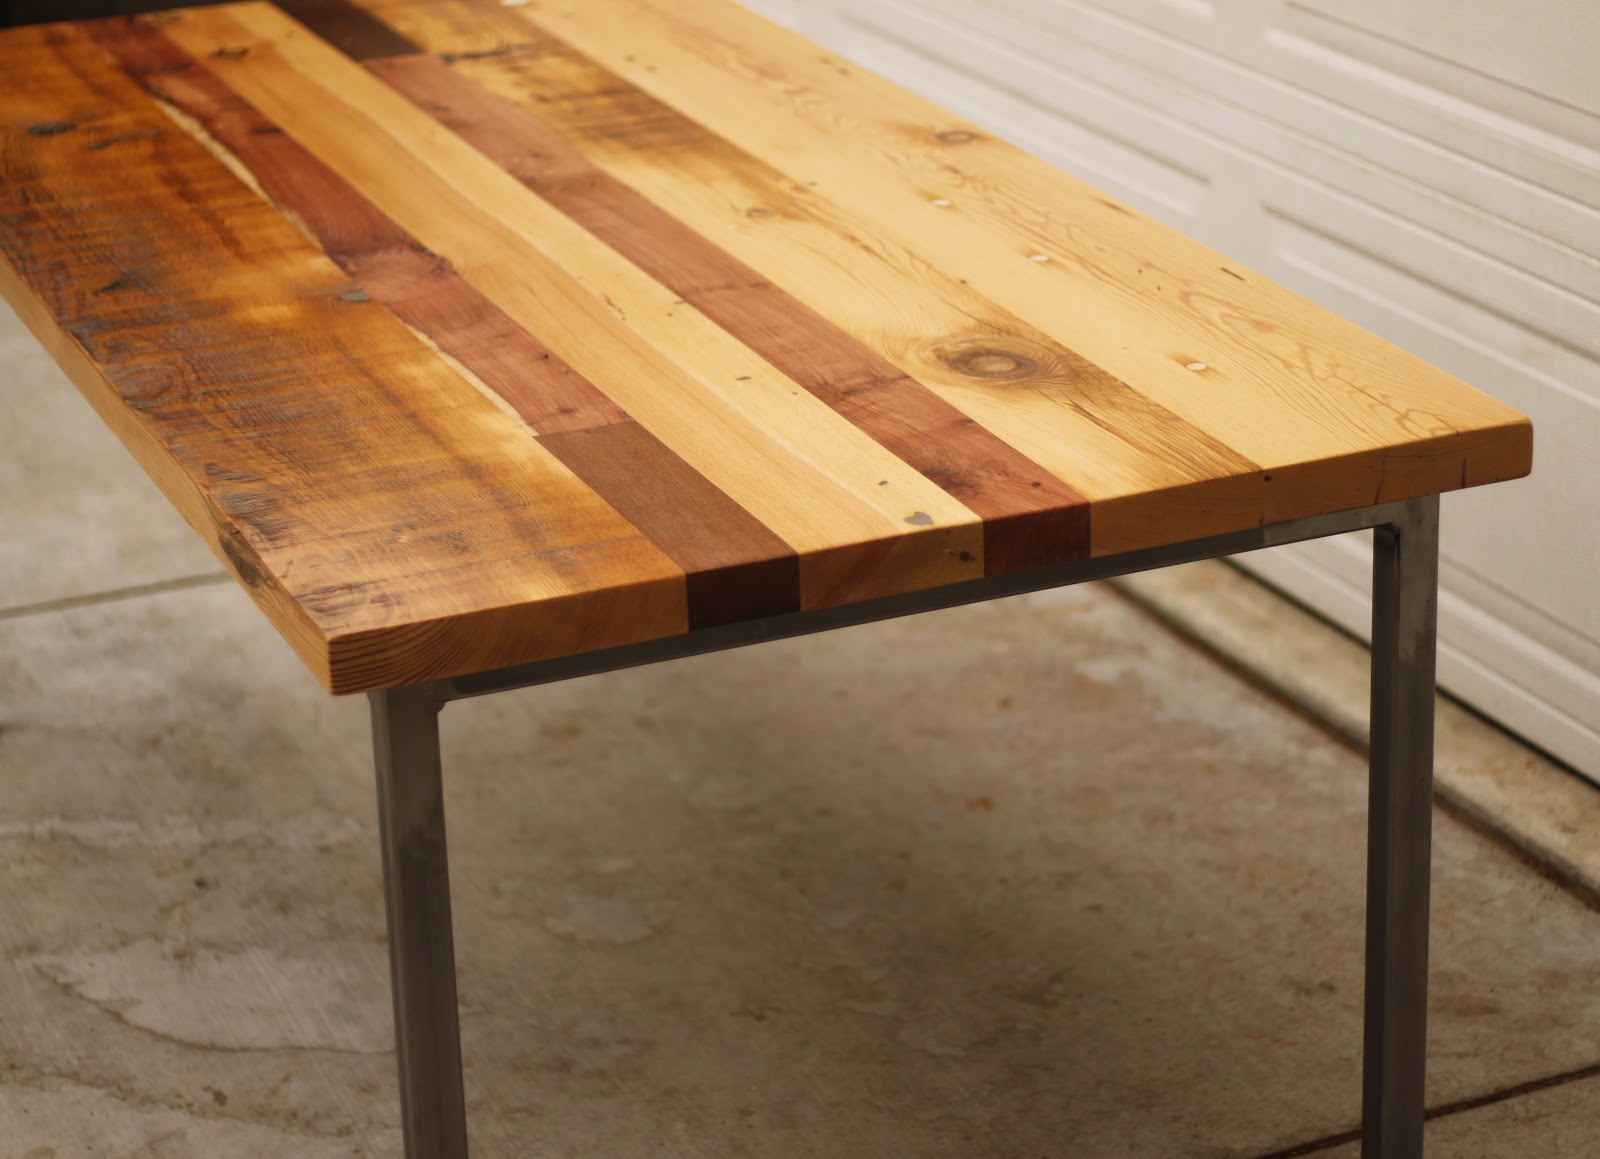 Arbor exchange reclaimed wood furniture patchwork table for Dinner table wood